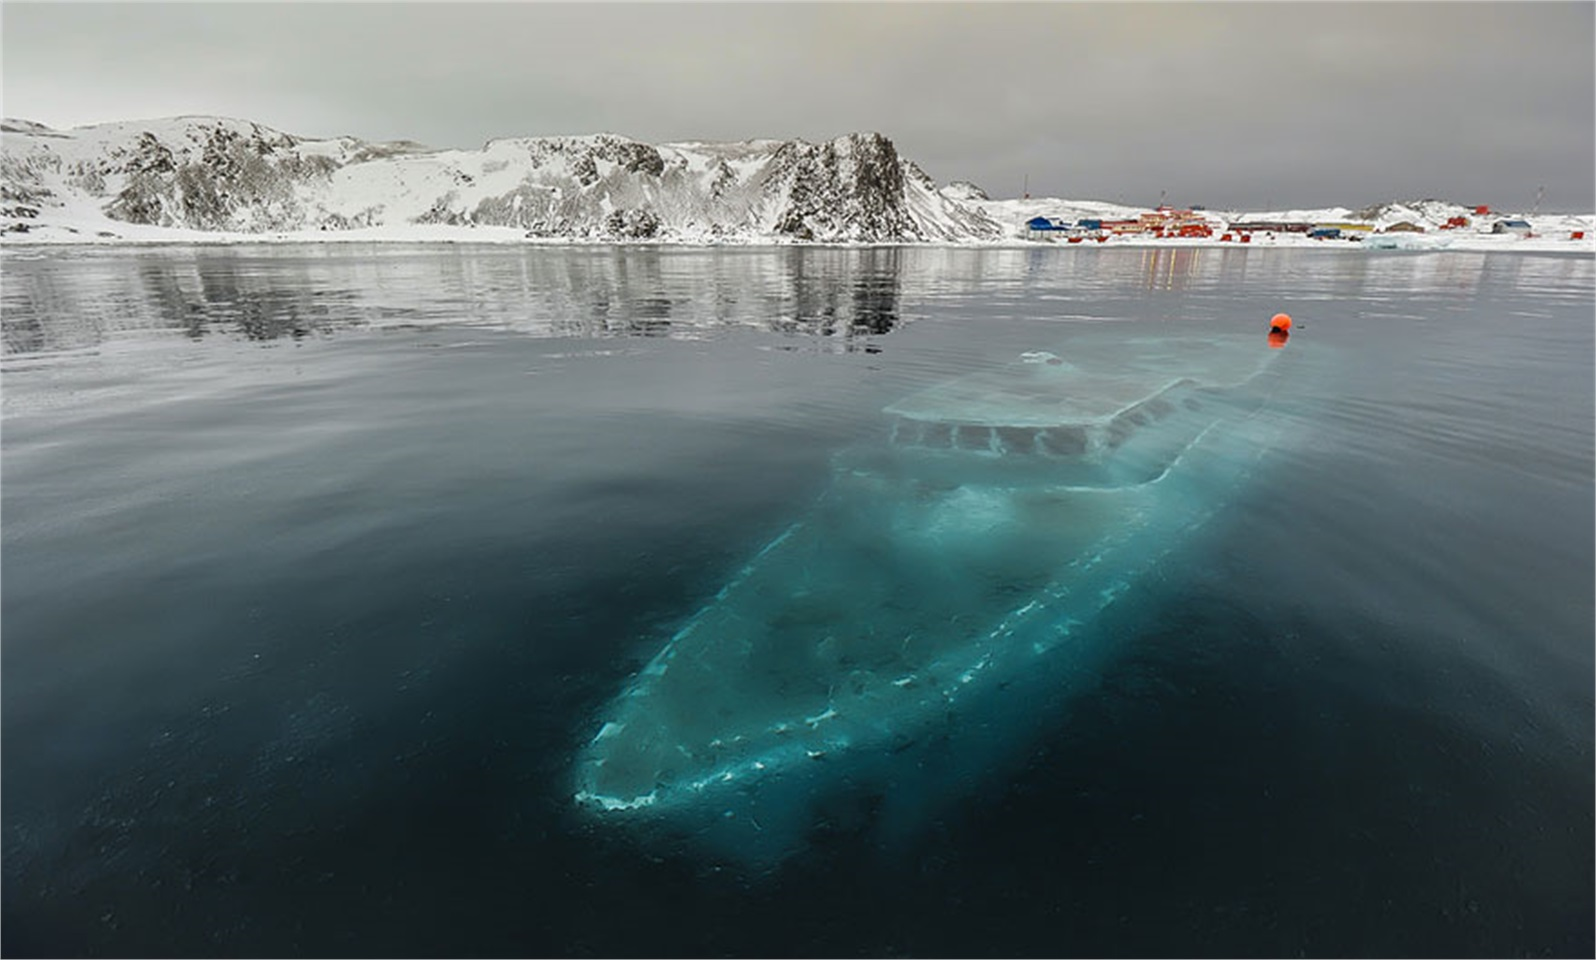 ncredible pictures of frozen things which you will won't believe they are real!